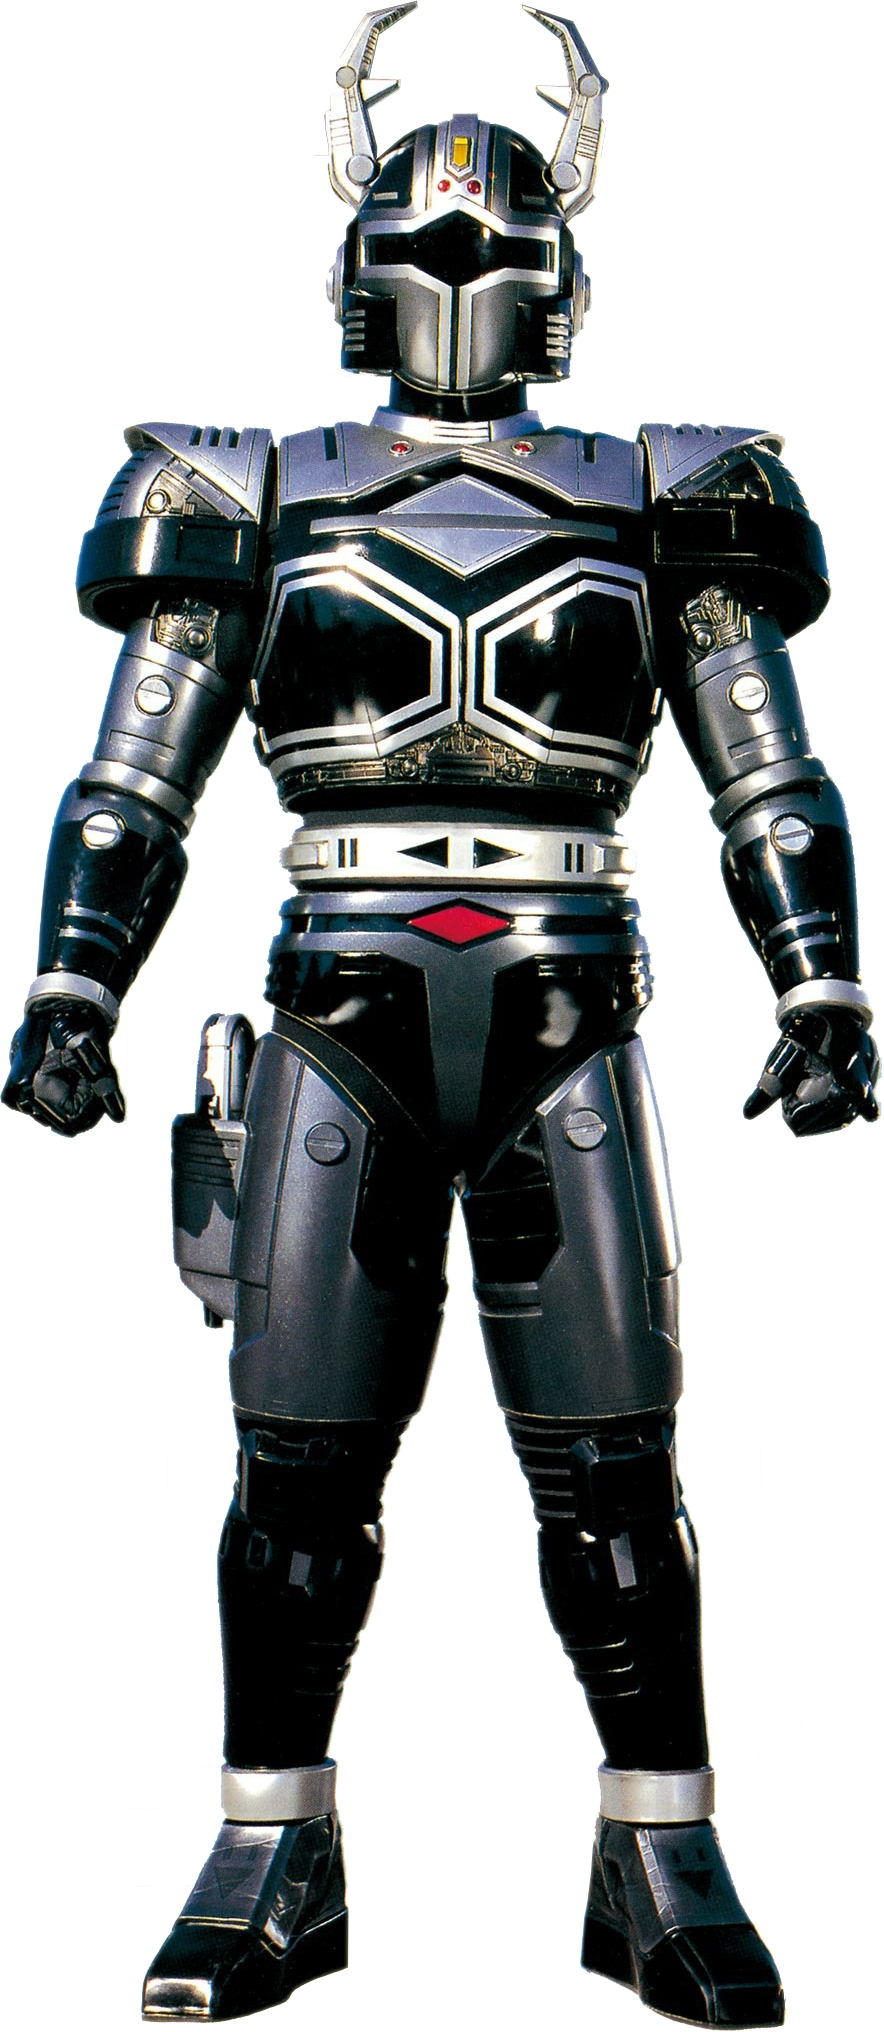 New Generation Of B Fighters Metal Heroes Wiki Fandom Powered By Wikia Tokusatsu